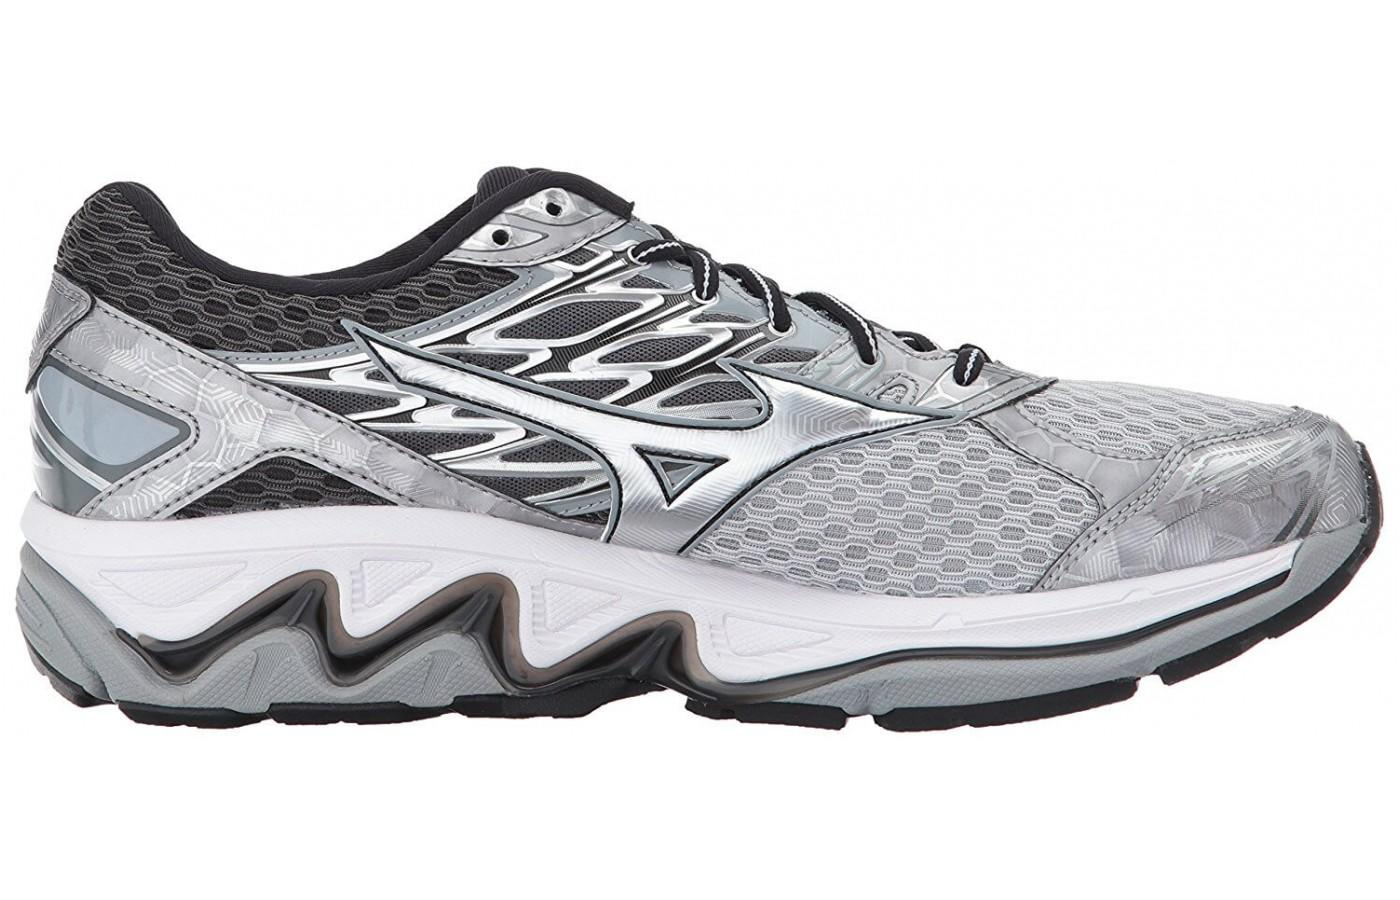 Men's Wave Paradox 4 has added stability features